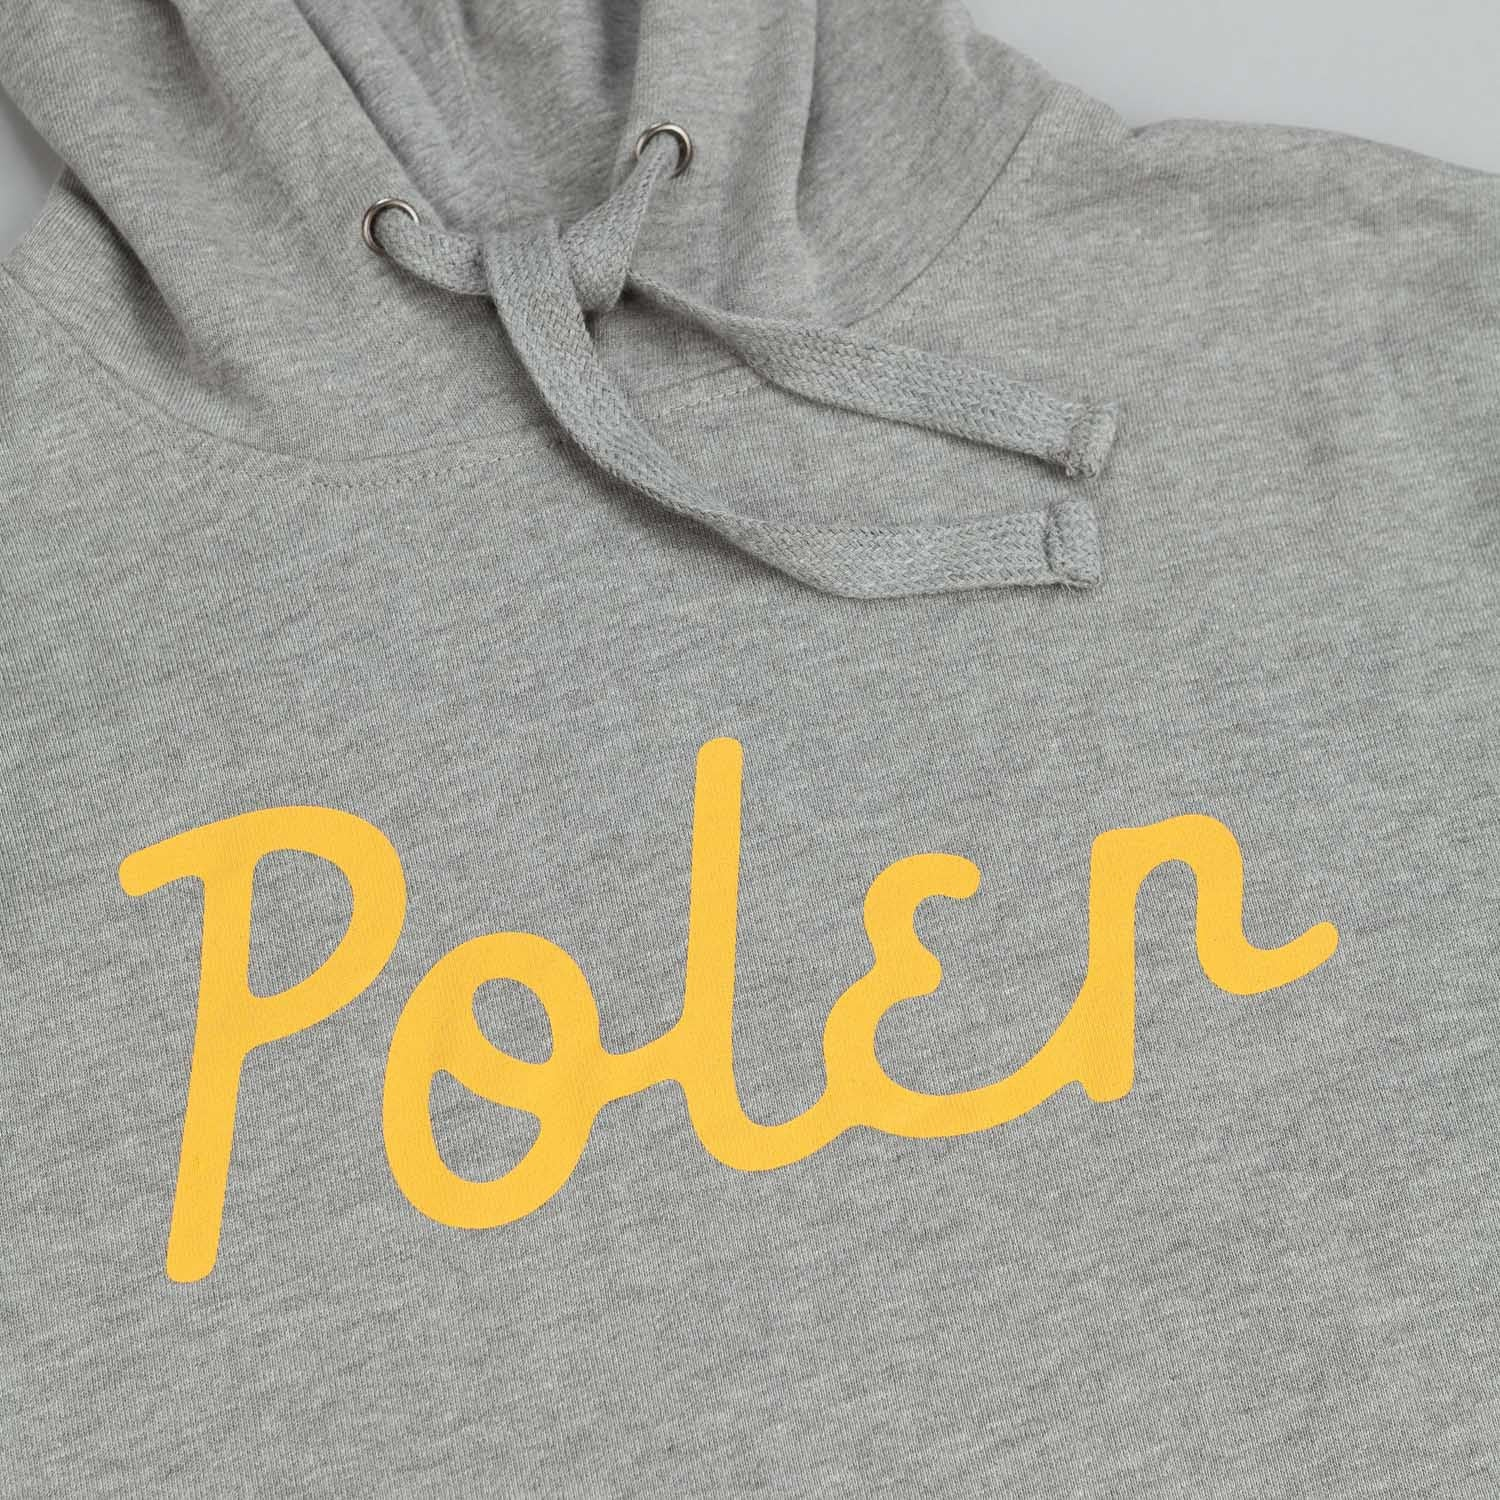 Poler Zilla Cozy Stuff Hooded Sweatshirt Grey